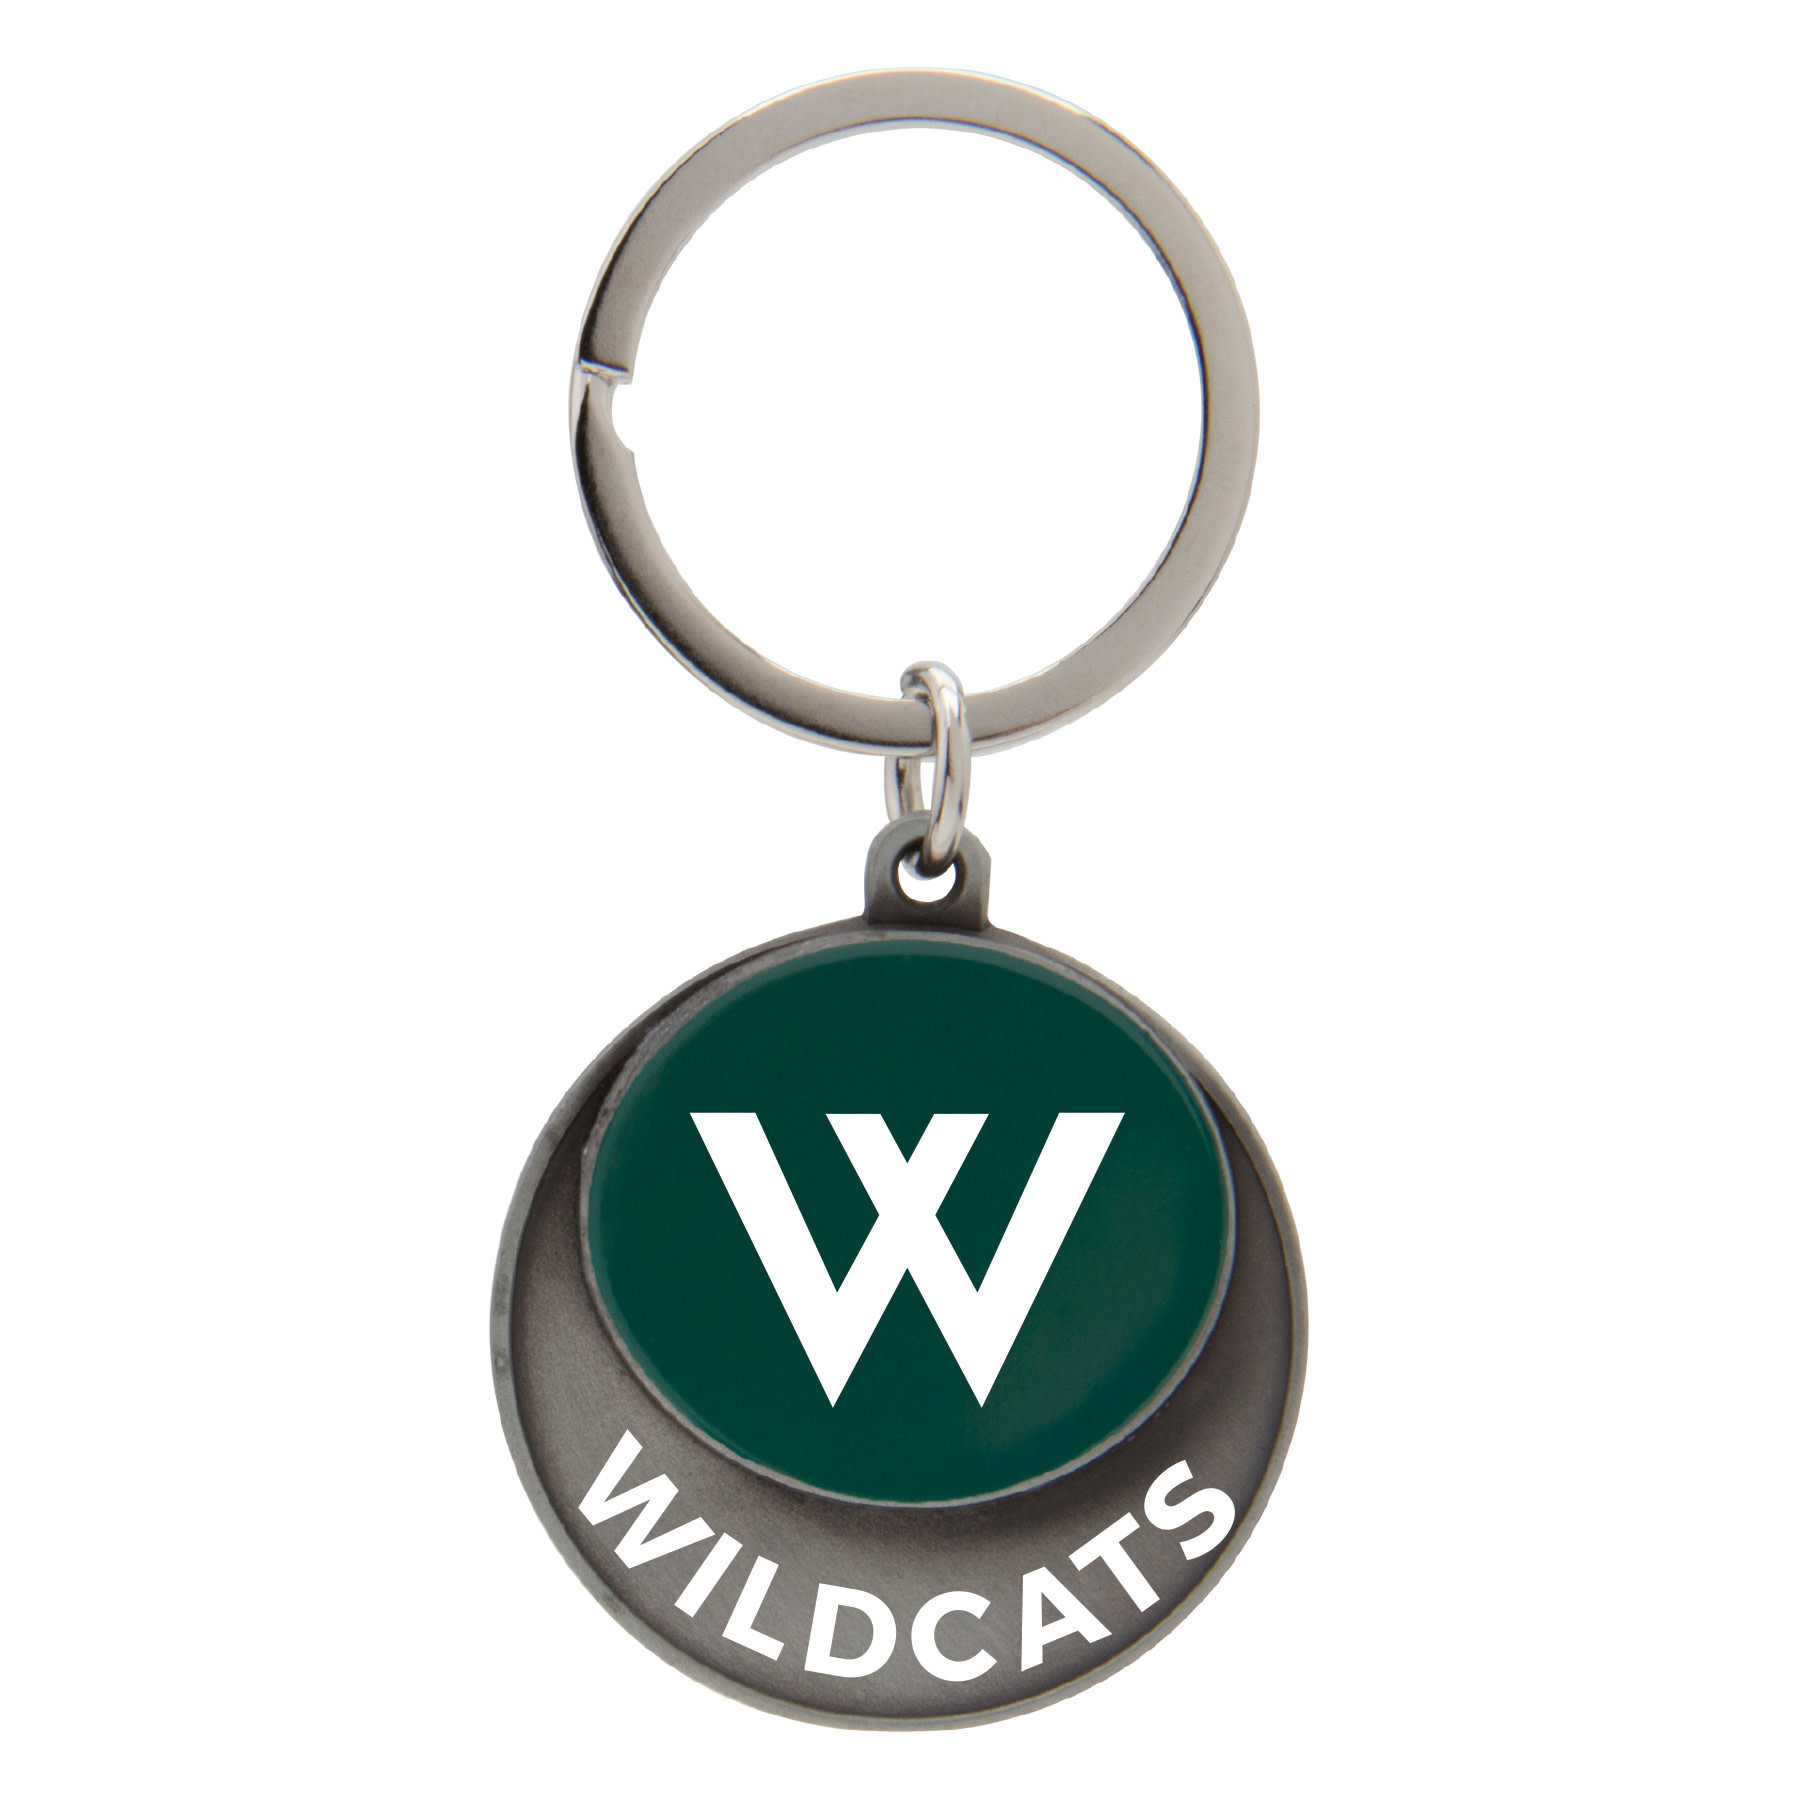 Keychain: Pewter Westminster Wildcats